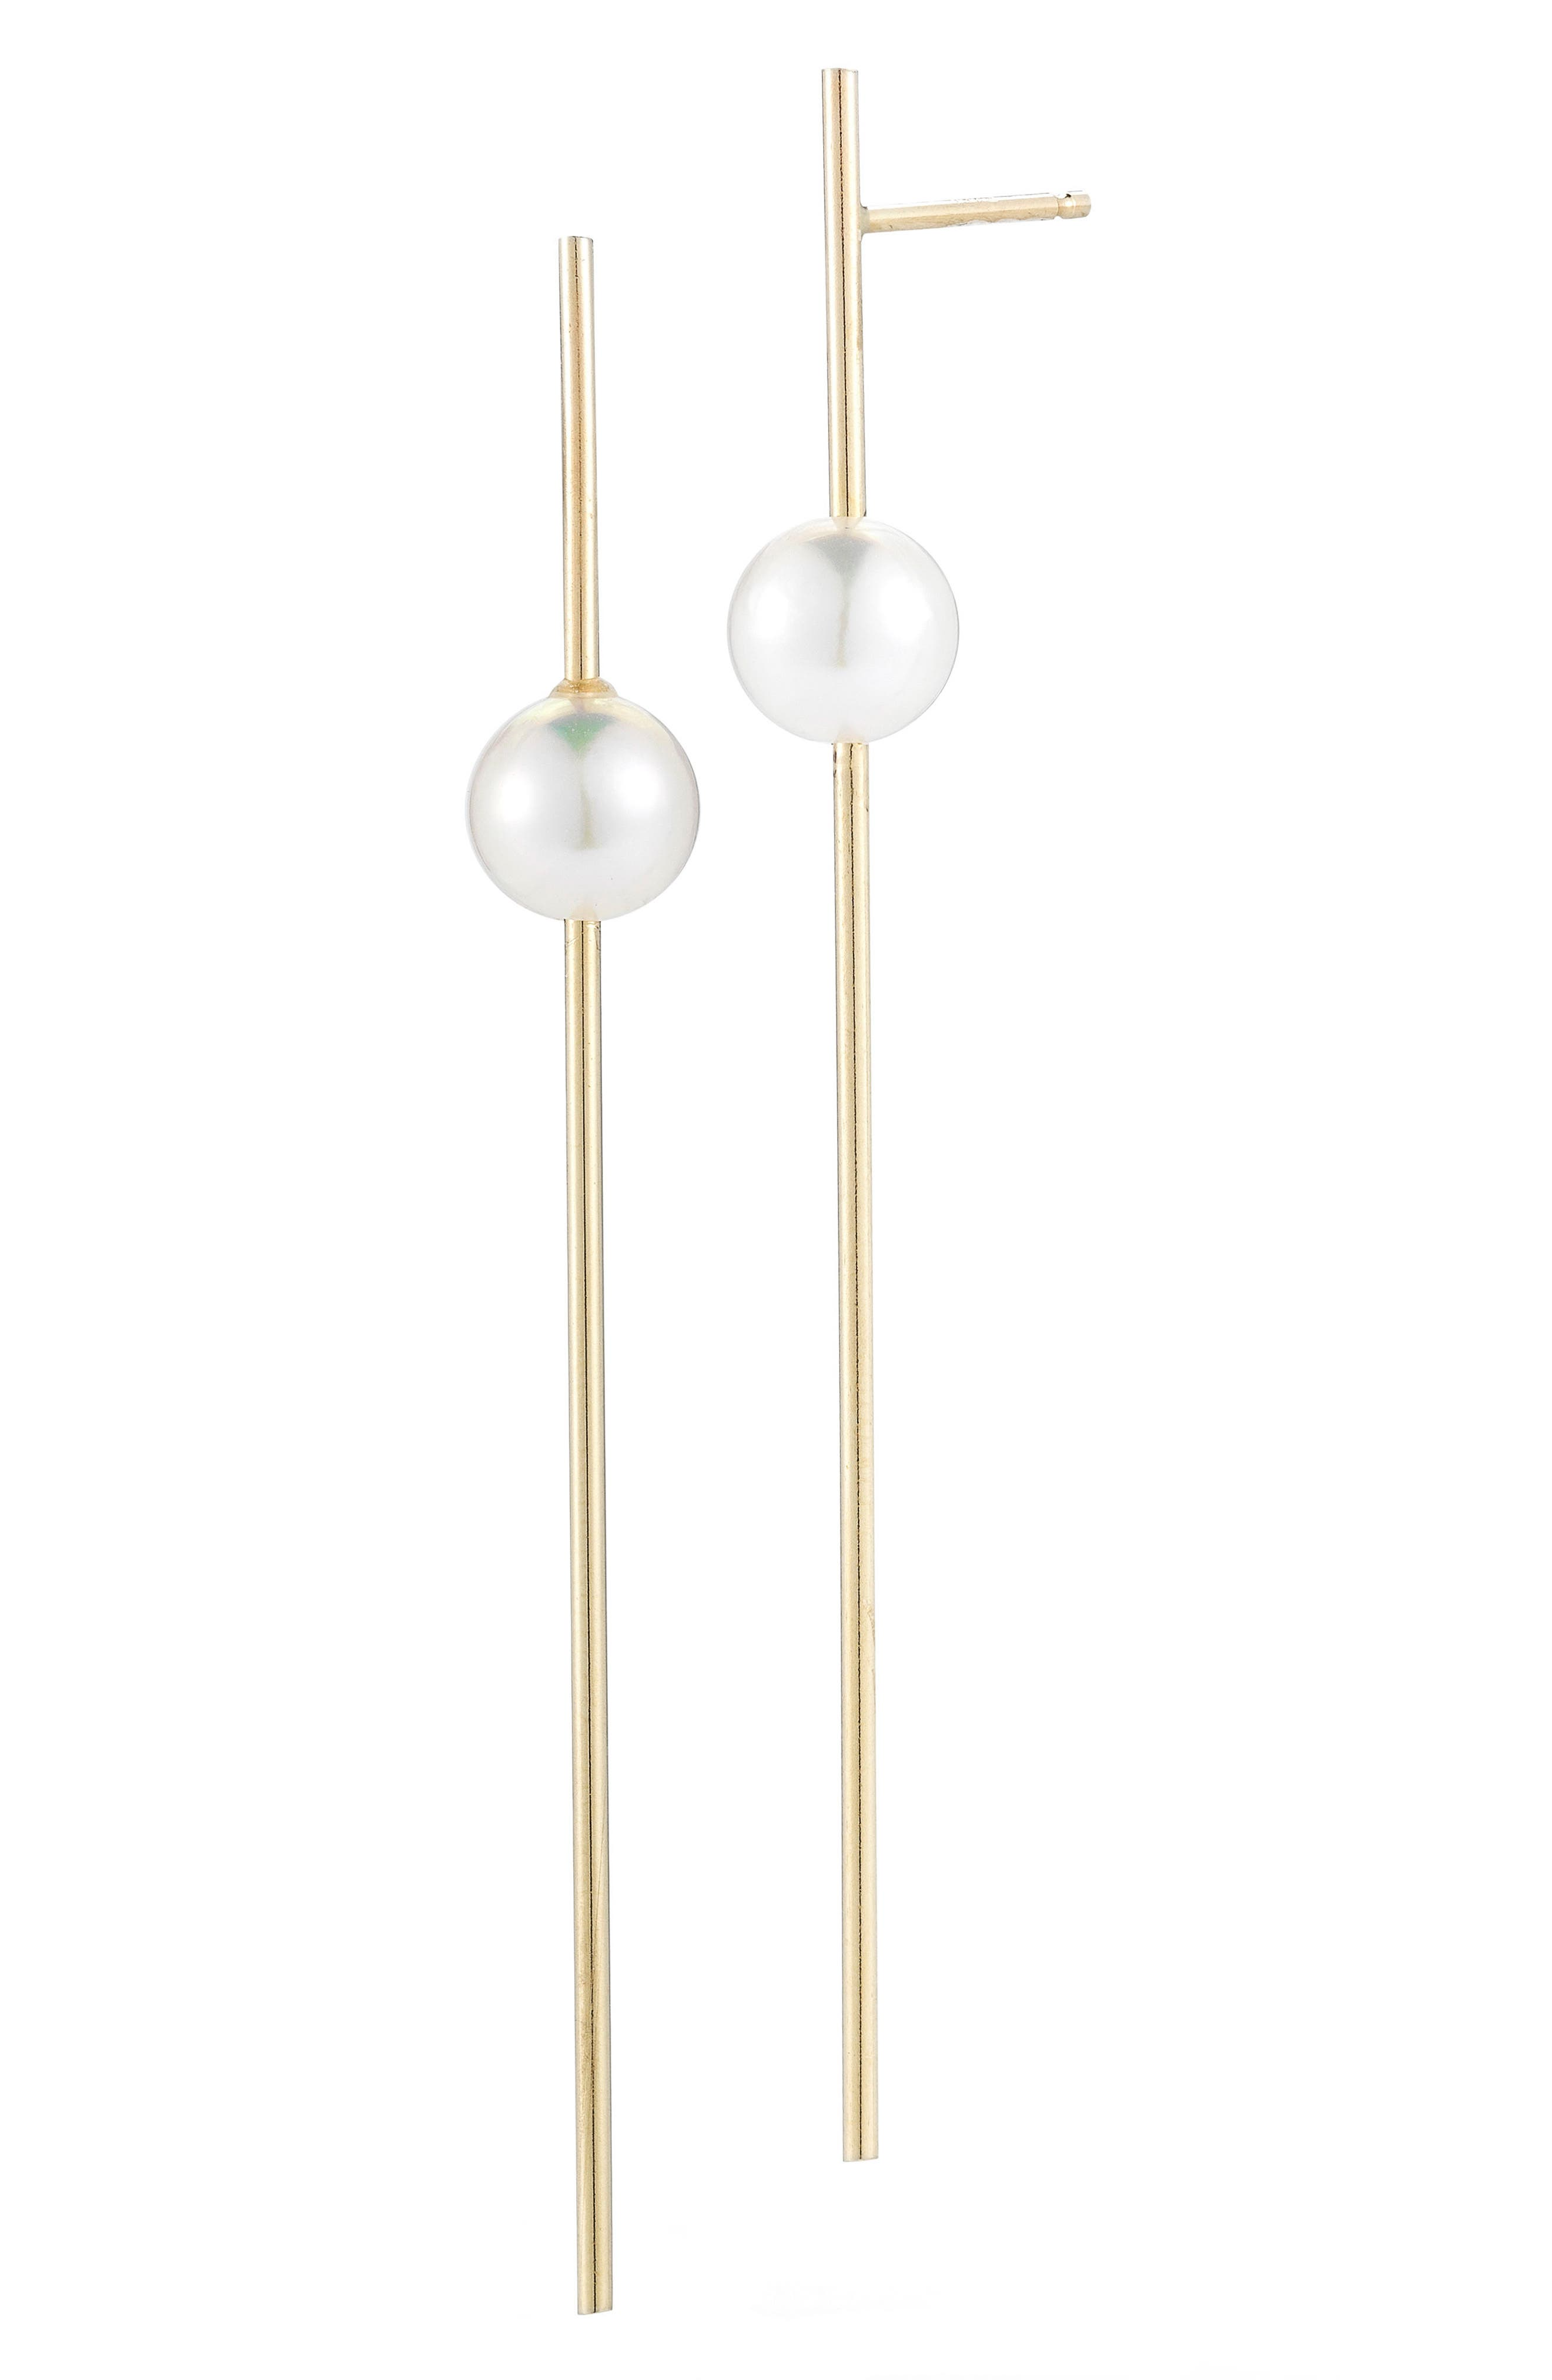 Sea of Beauty Linear Drop Pearl Earrings,                             Main thumbnail 1, color,                             YELLOW GOLD/ WHITE PEARL